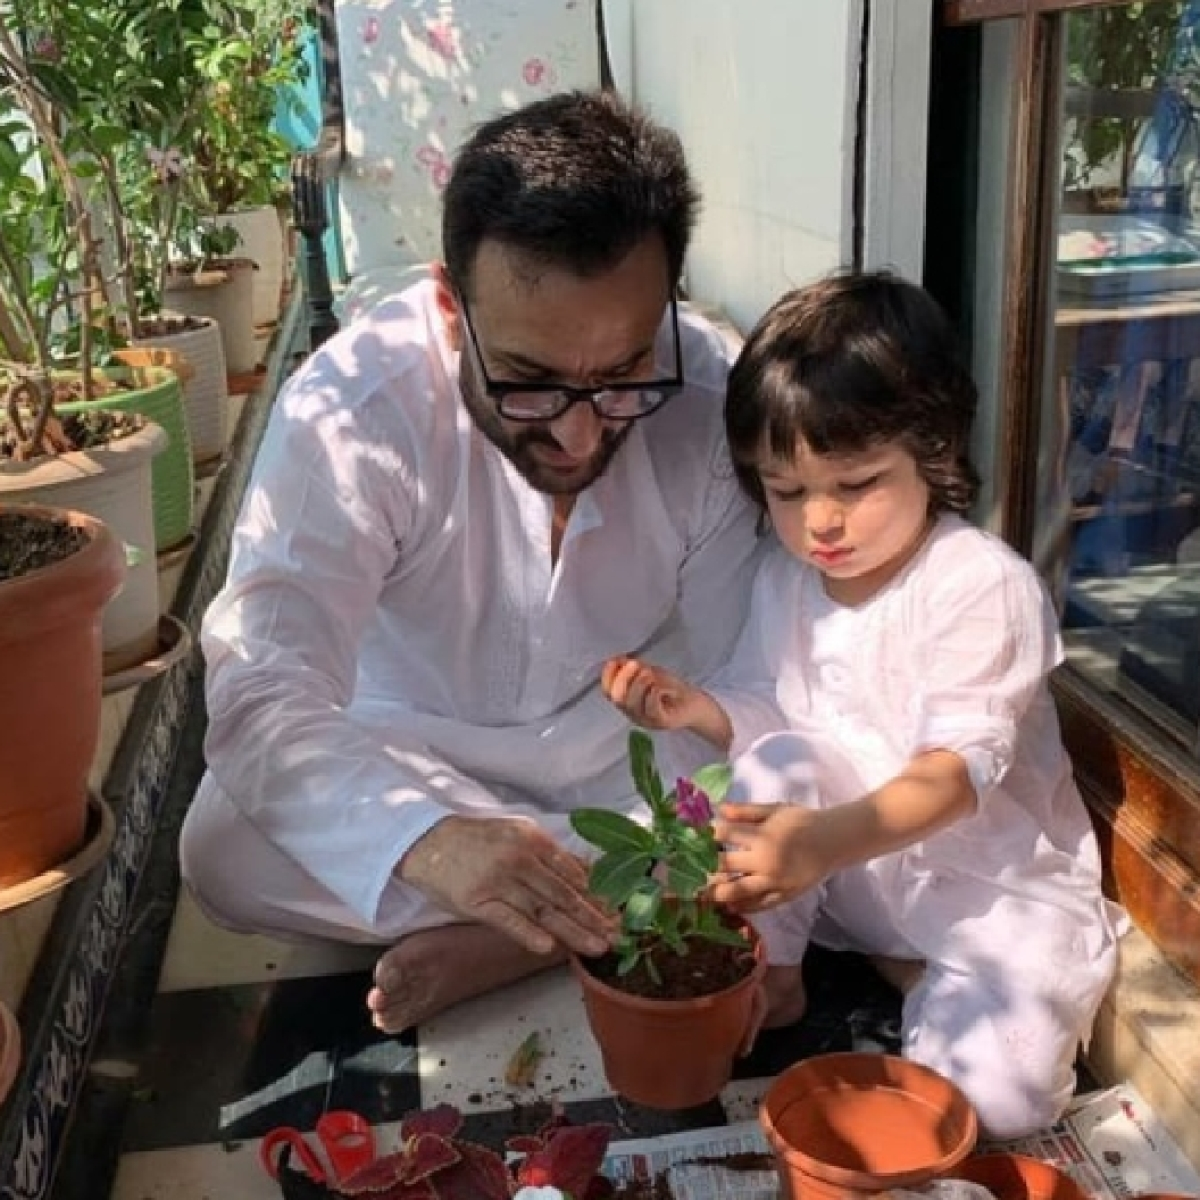 Kareena Kapoor shares adorable pic of Saif, Taimur Ali Khan 'doing their bit' amid coronavirus outbreak